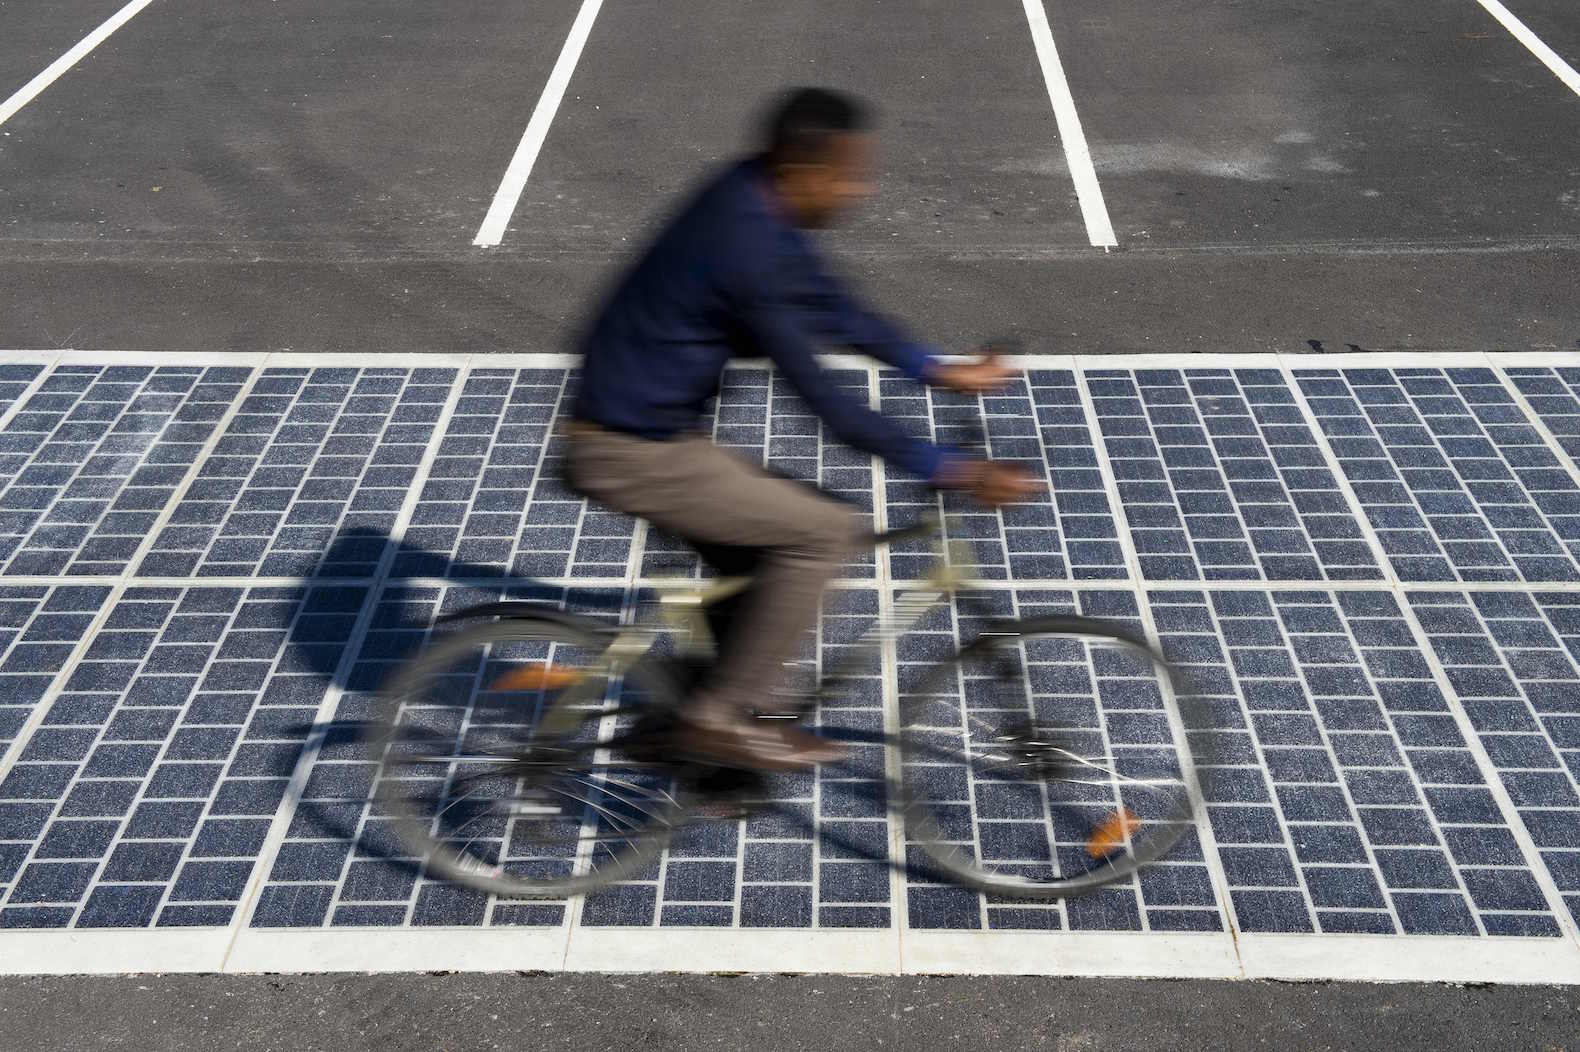 Wattway Will Install 1000 km of Solar Roads in France